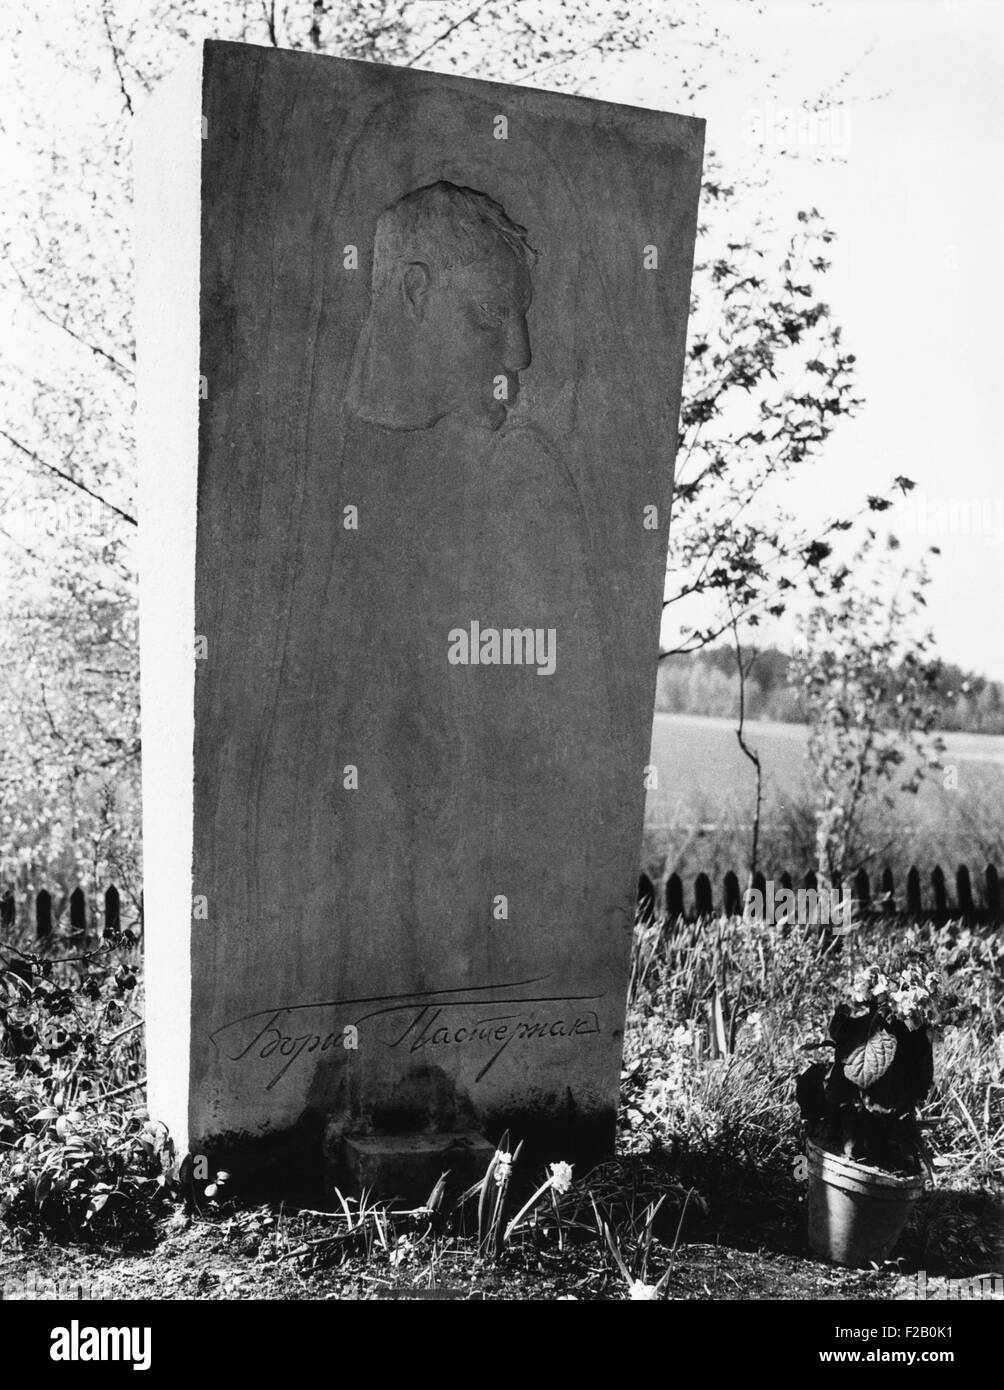 Boris Pasternak's grave in a Russian Orthodox cemetery in Peredelkino, near Moscow. May 1966. At the time of - Stock Image